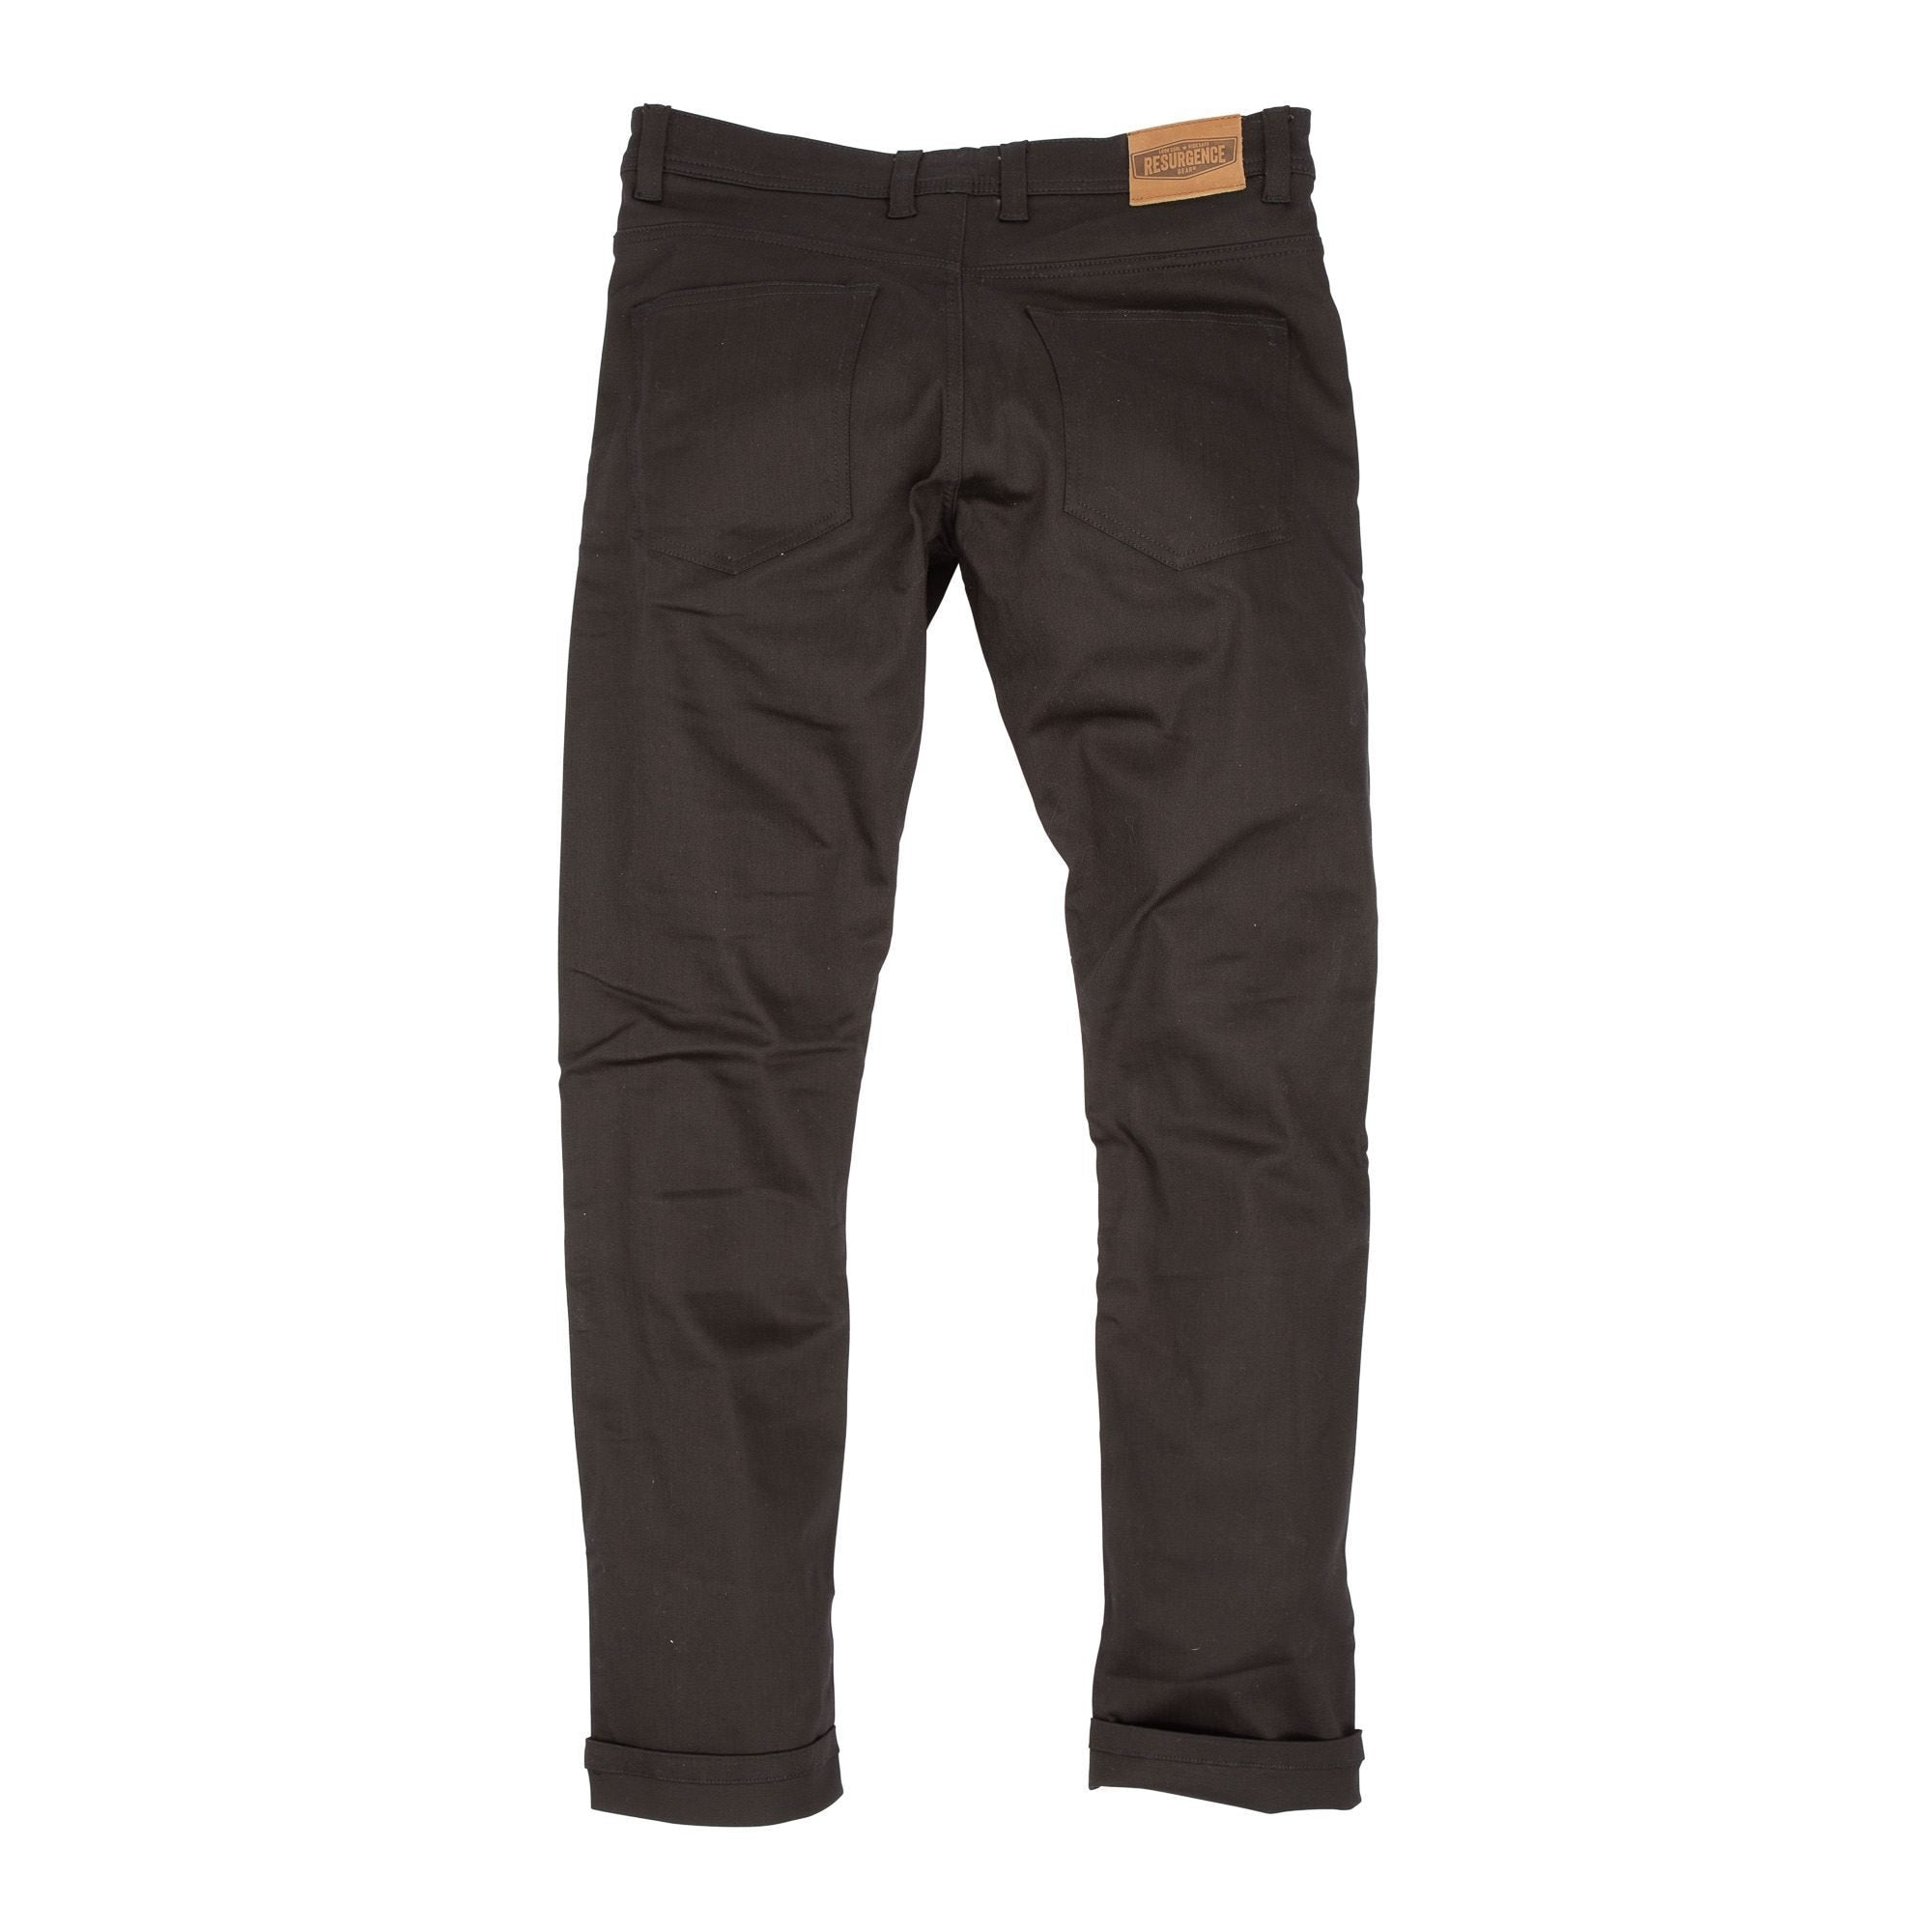 Resurgence Gear Inc. - Resurgence Gear® 2020 Warrior PEKEV Lite Motorcycle Jeans - Black - Men's Trousers - Salt Flats Clothing